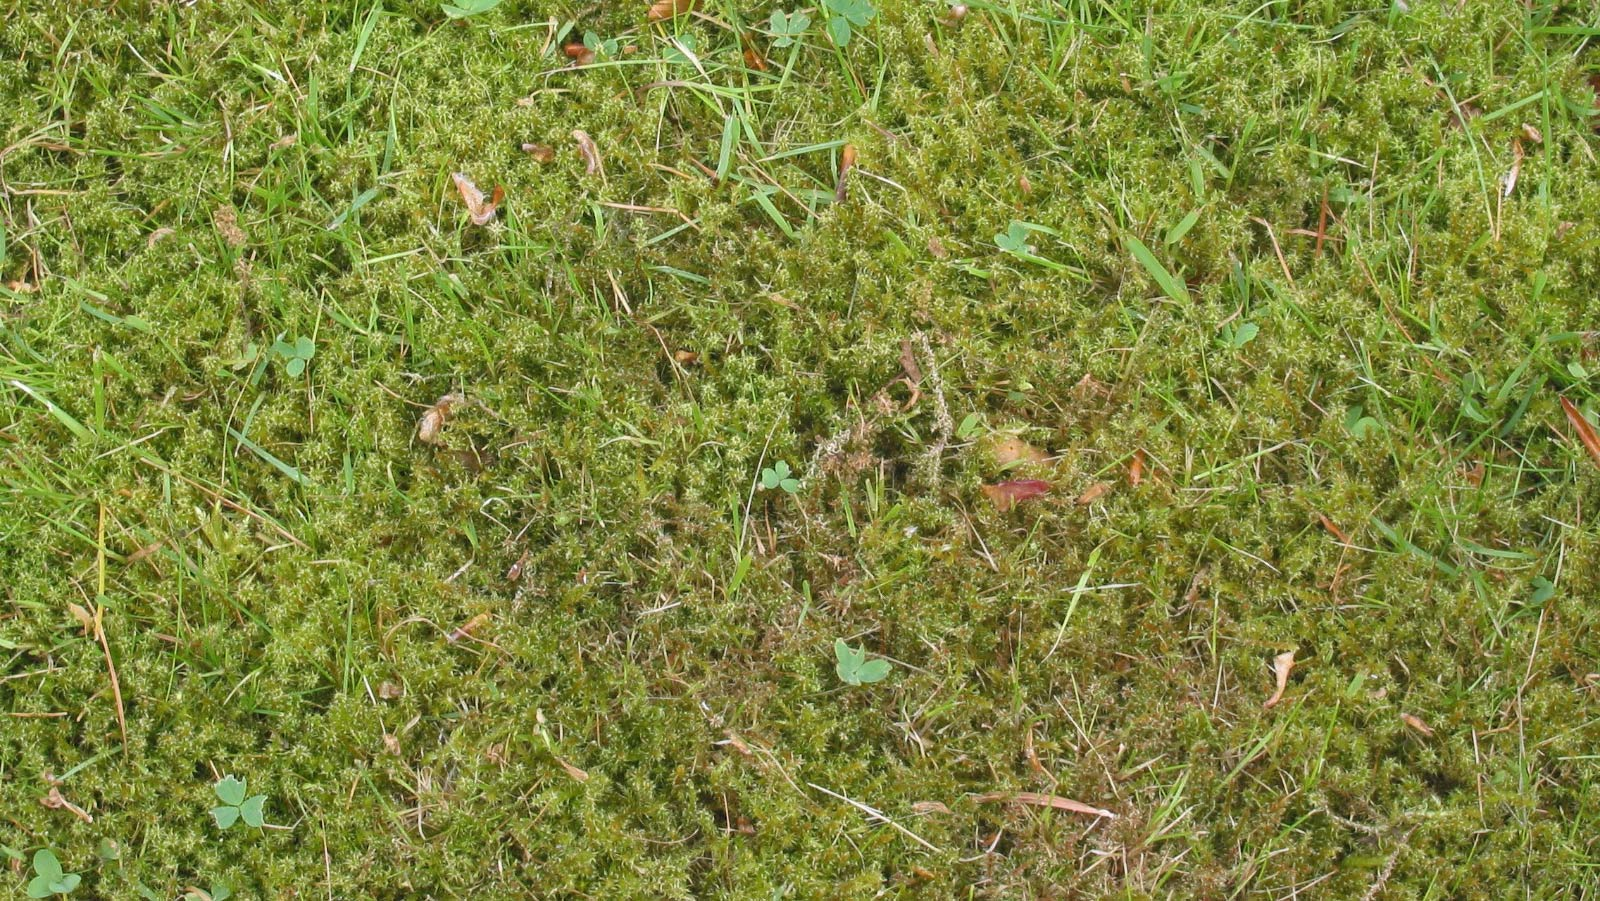 WHEN TO SCARIFY YOUR LAWN